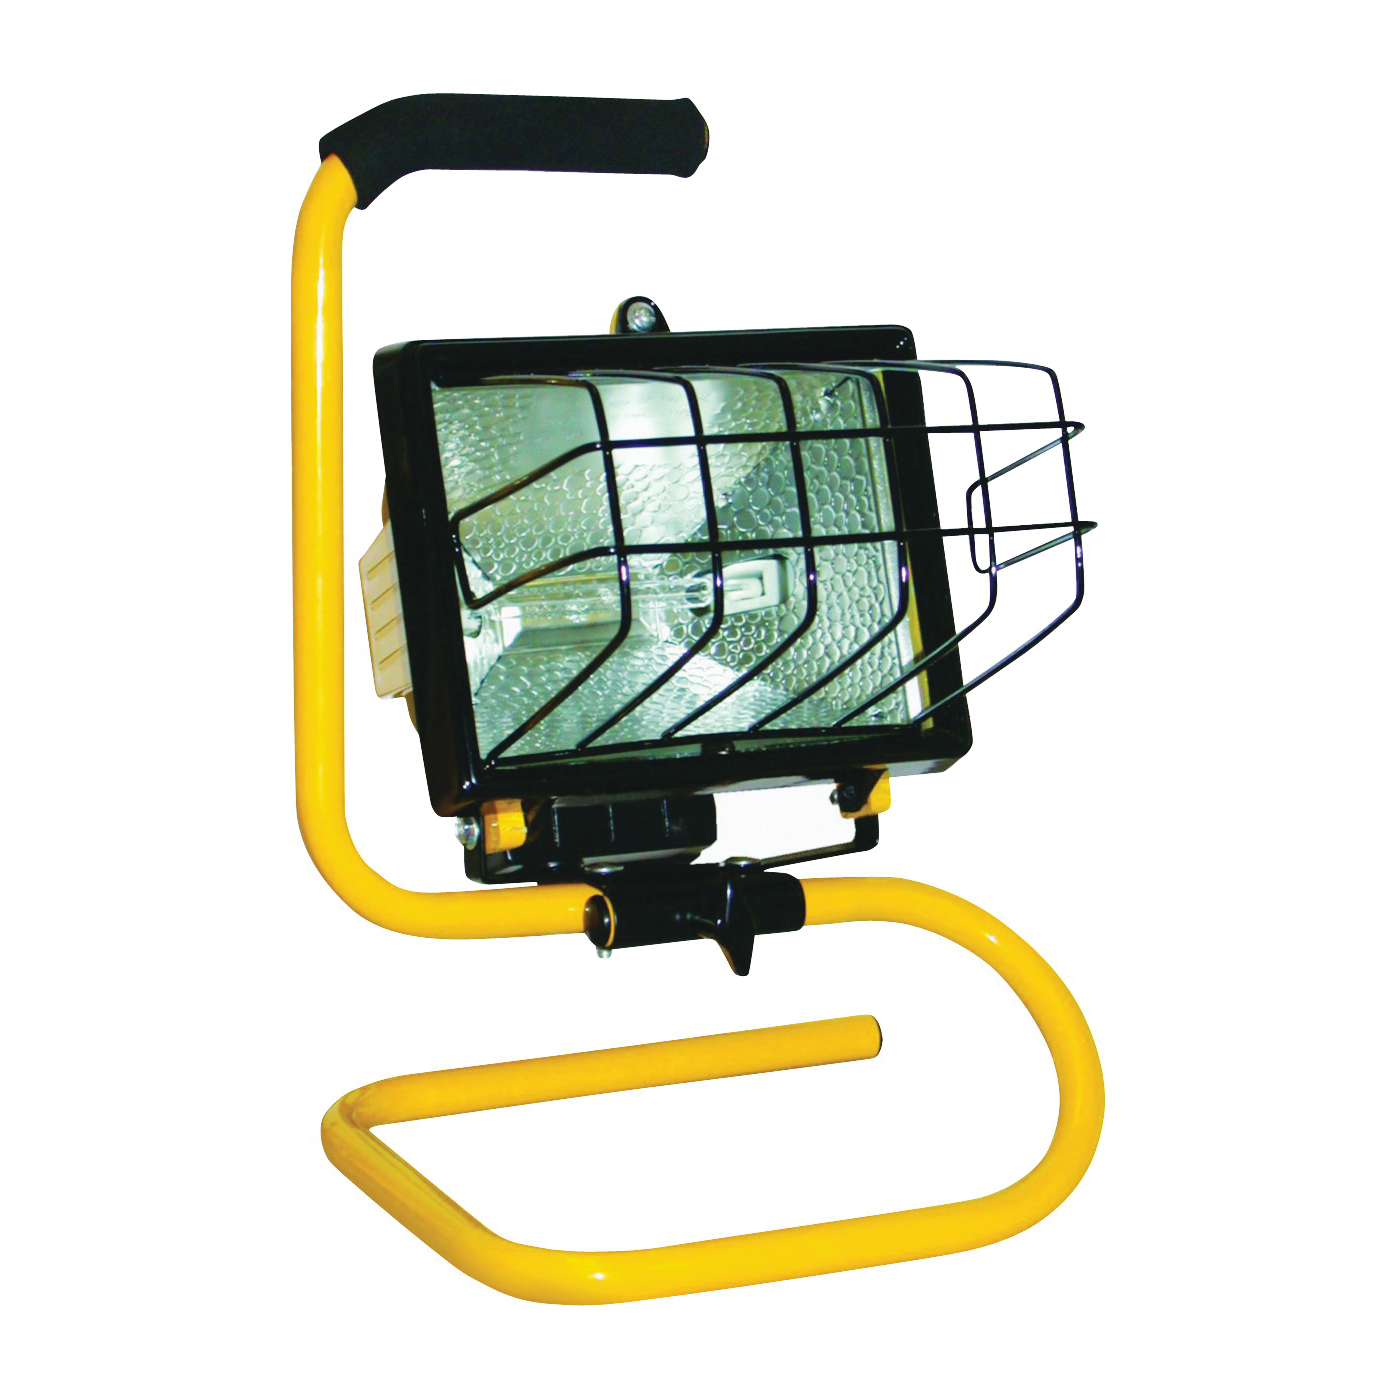 Picture of PowerZone ORHL500W03 Work Light, 120 V, 500 W, Halogen Lamp, Yellow